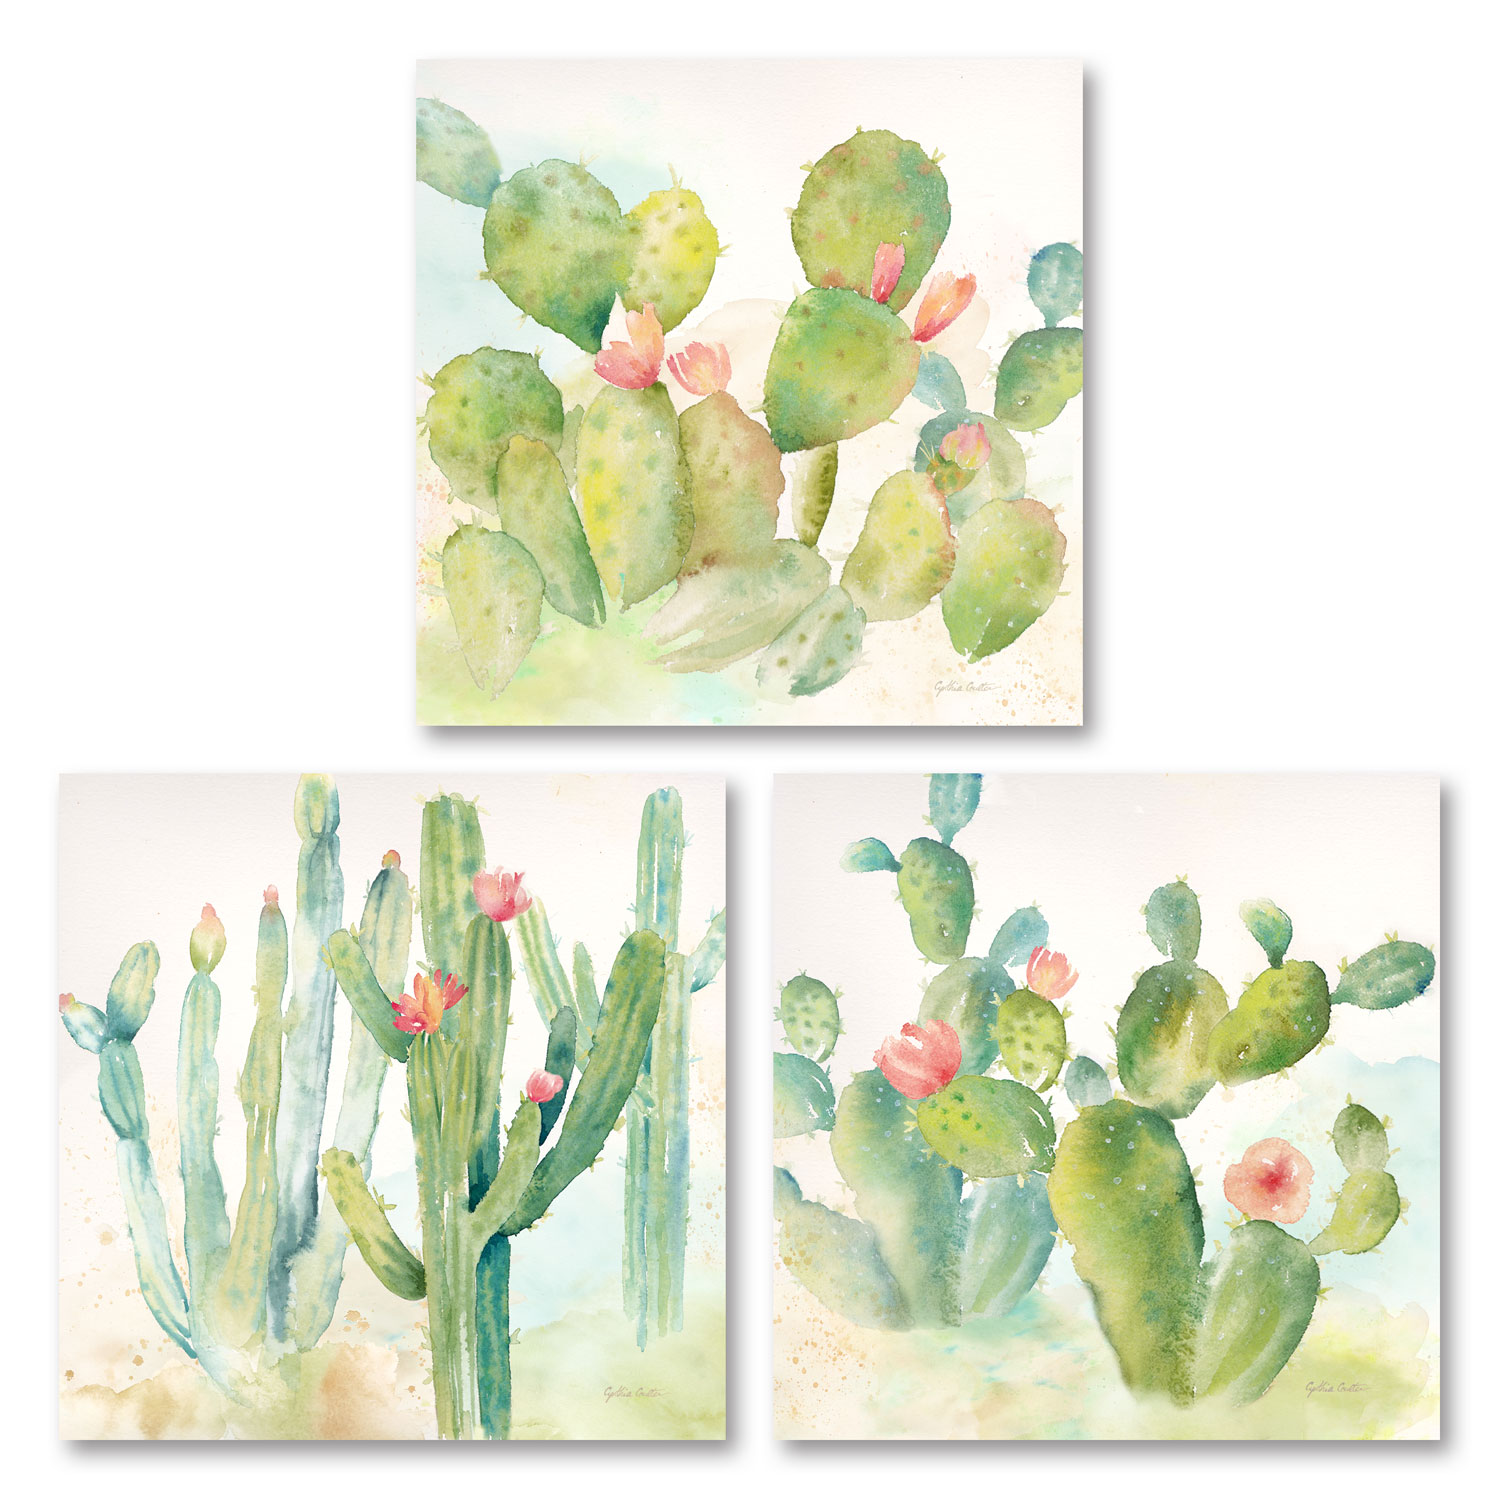 Lovely Watercolor-Style Desert Cactus Print Set by Cynthia Coulter; Three 12x12in Unframed Paper Posters